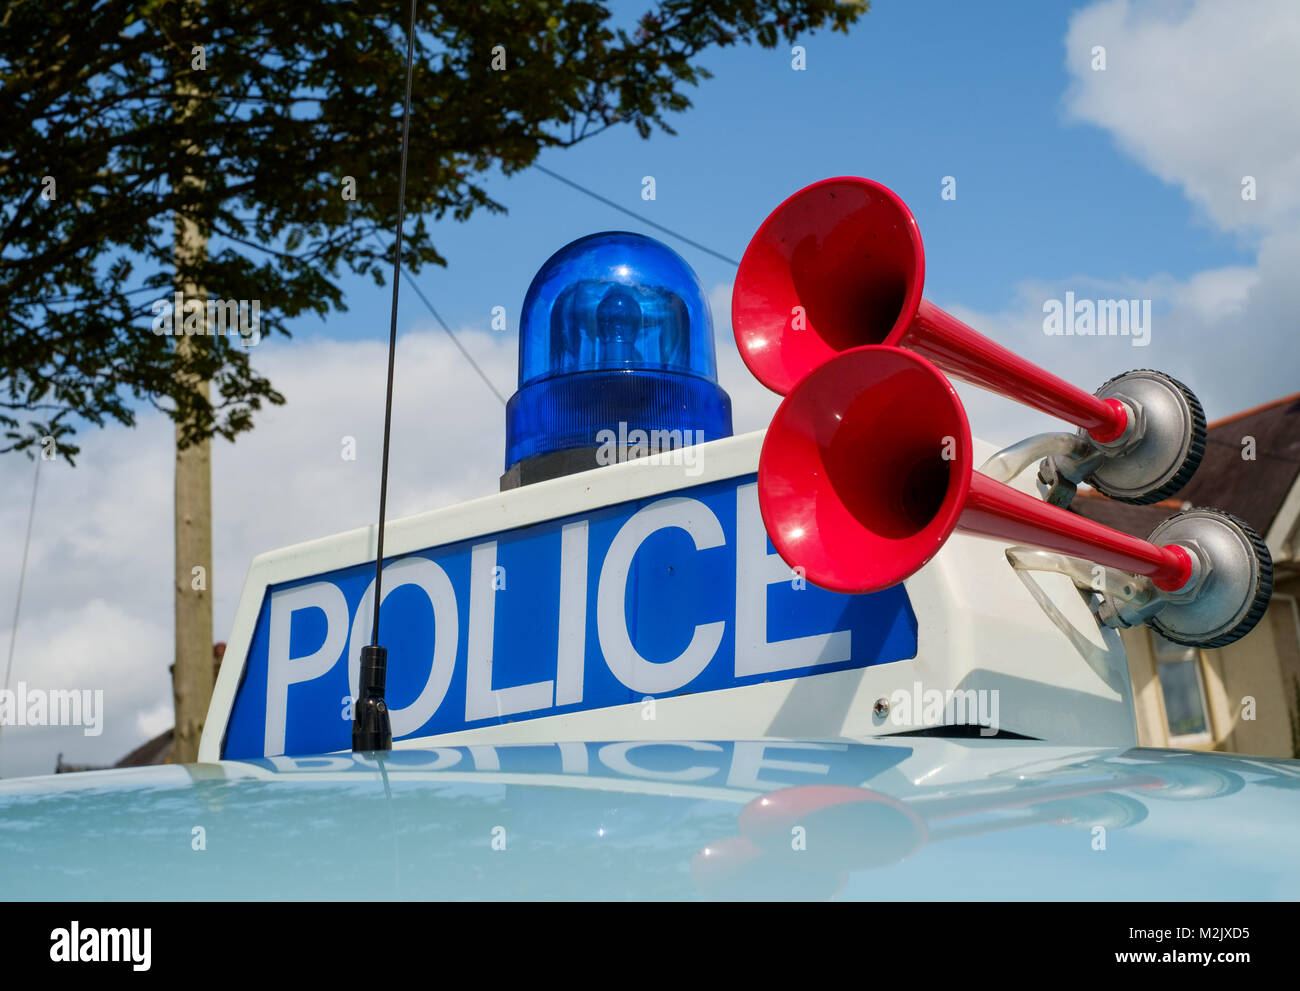 POLICE lettering on illuminated sign and two-tone horns mounted to roof of  Morris Minor classic Police 'Panda' - Stock Image